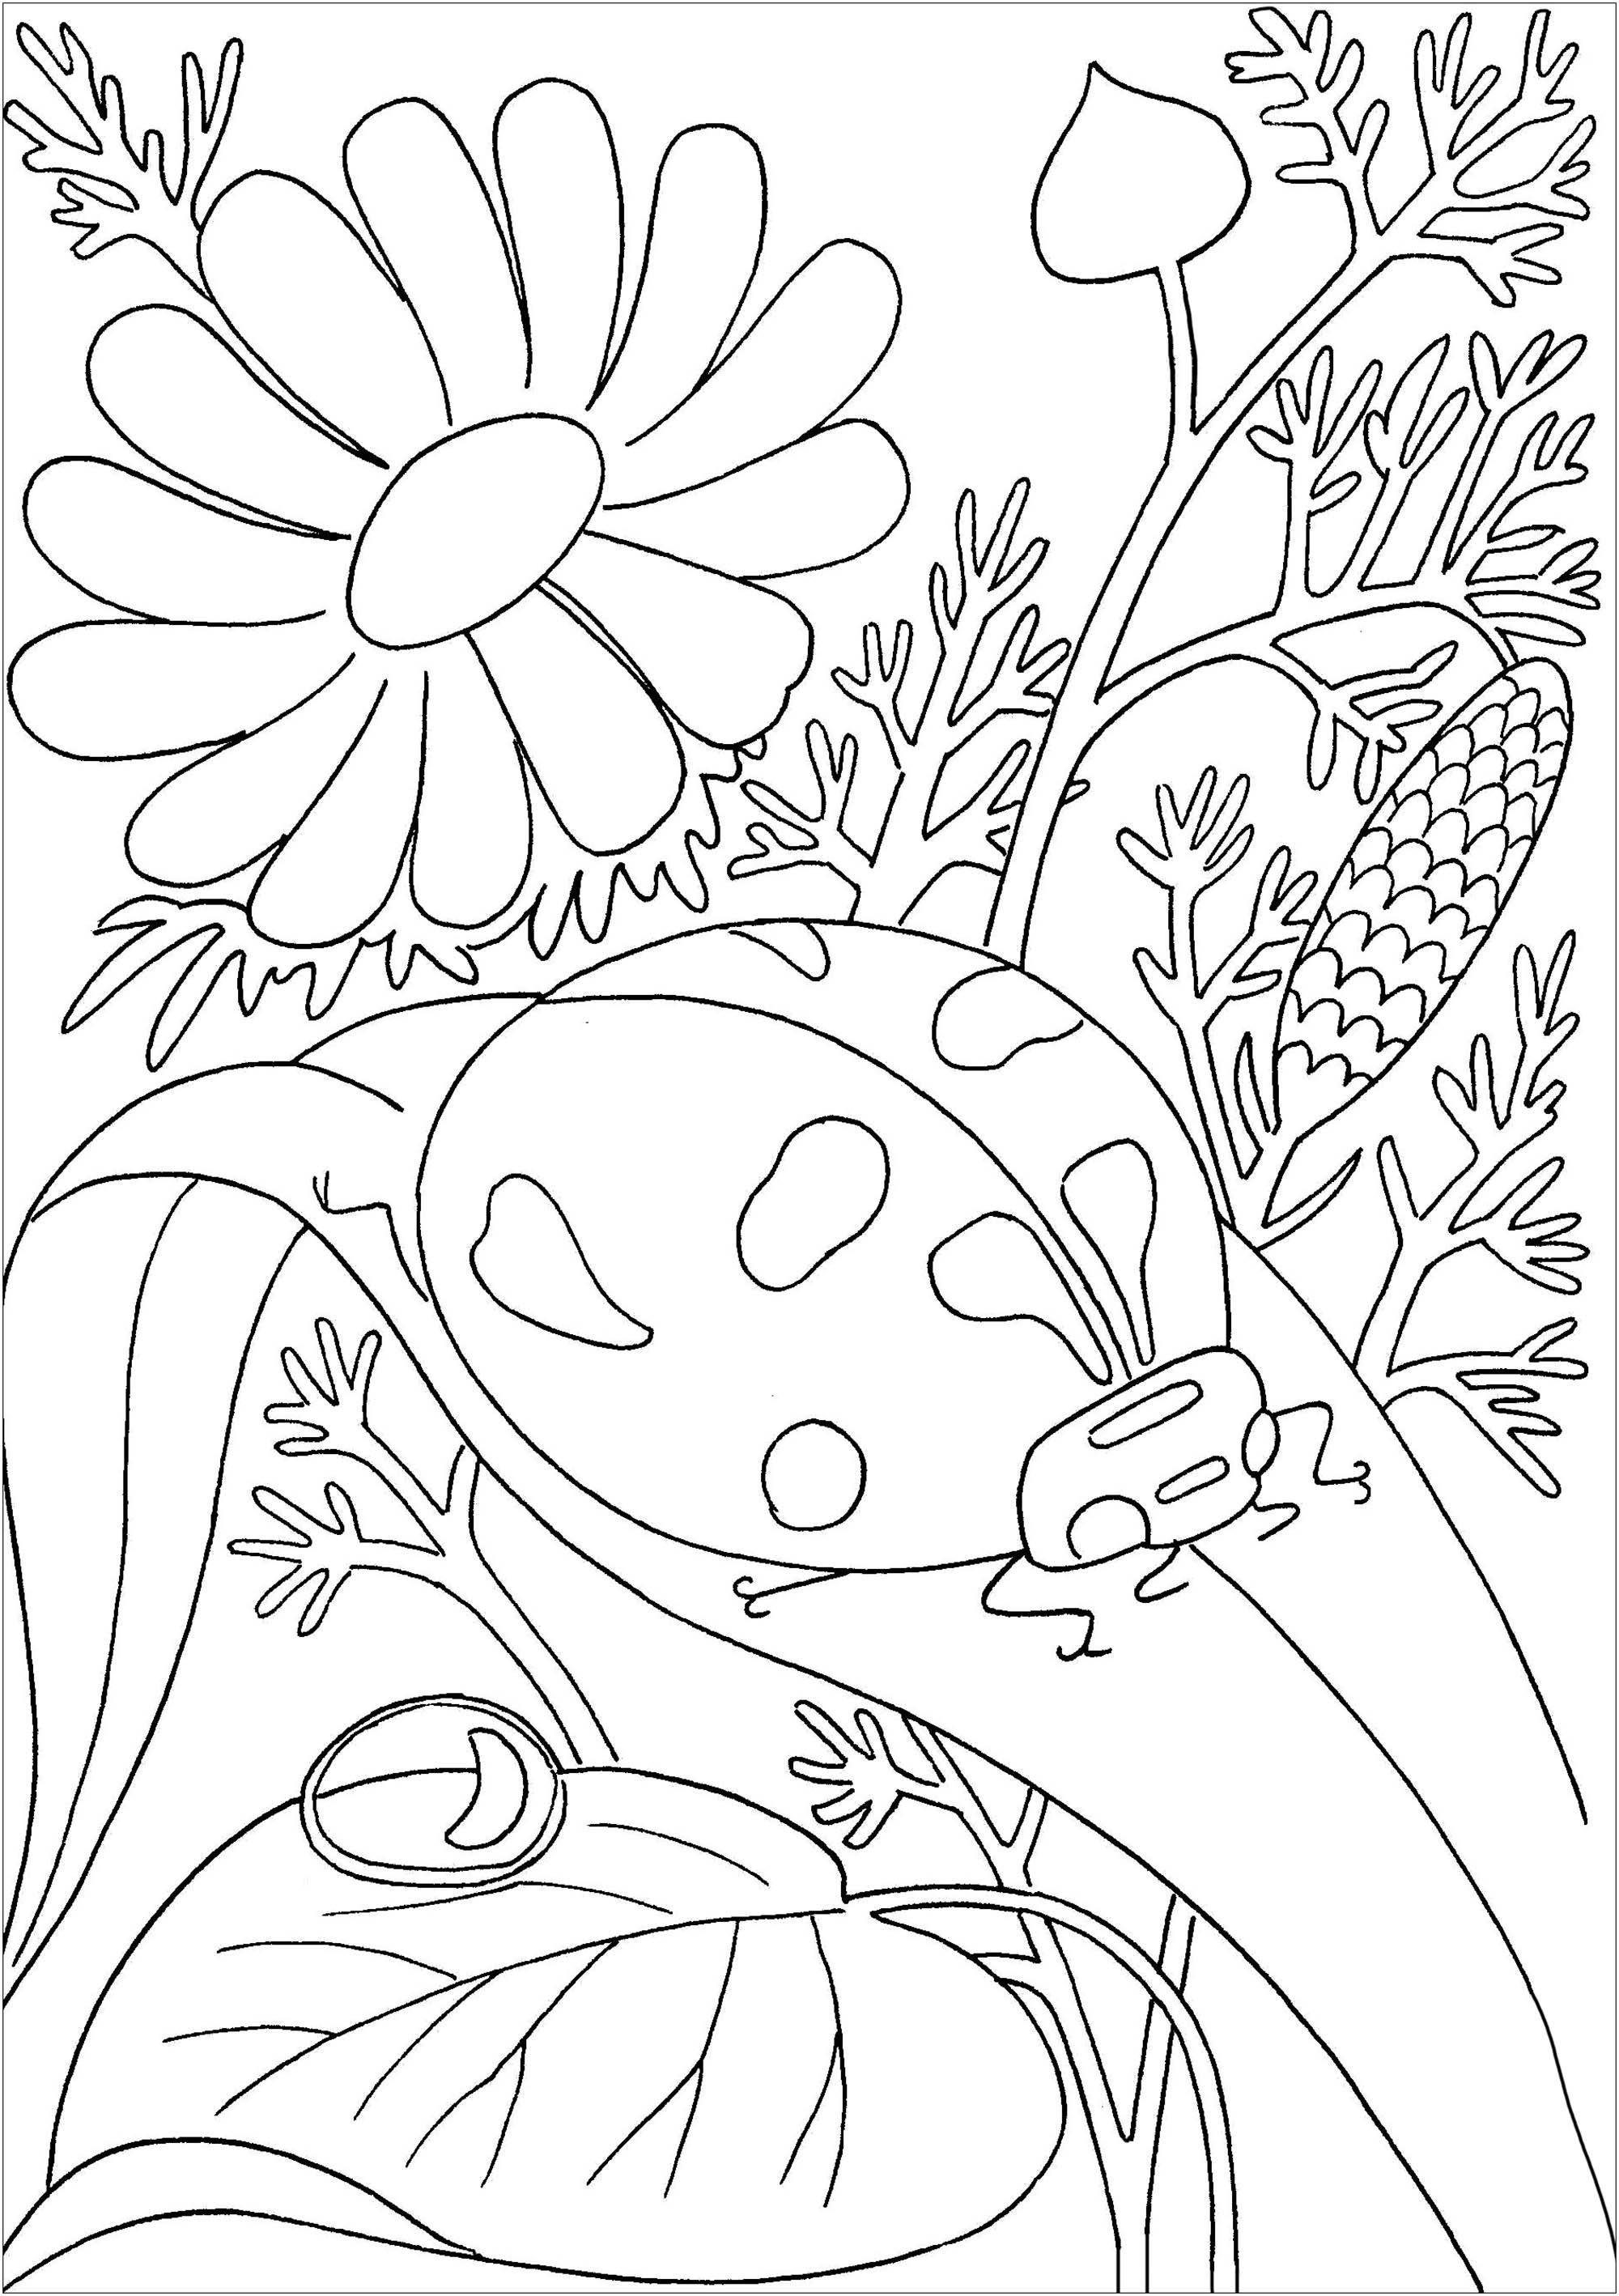 lady bug coloring pages ladybug on a leave butterflies insects adult coloring lady coloring pages bug